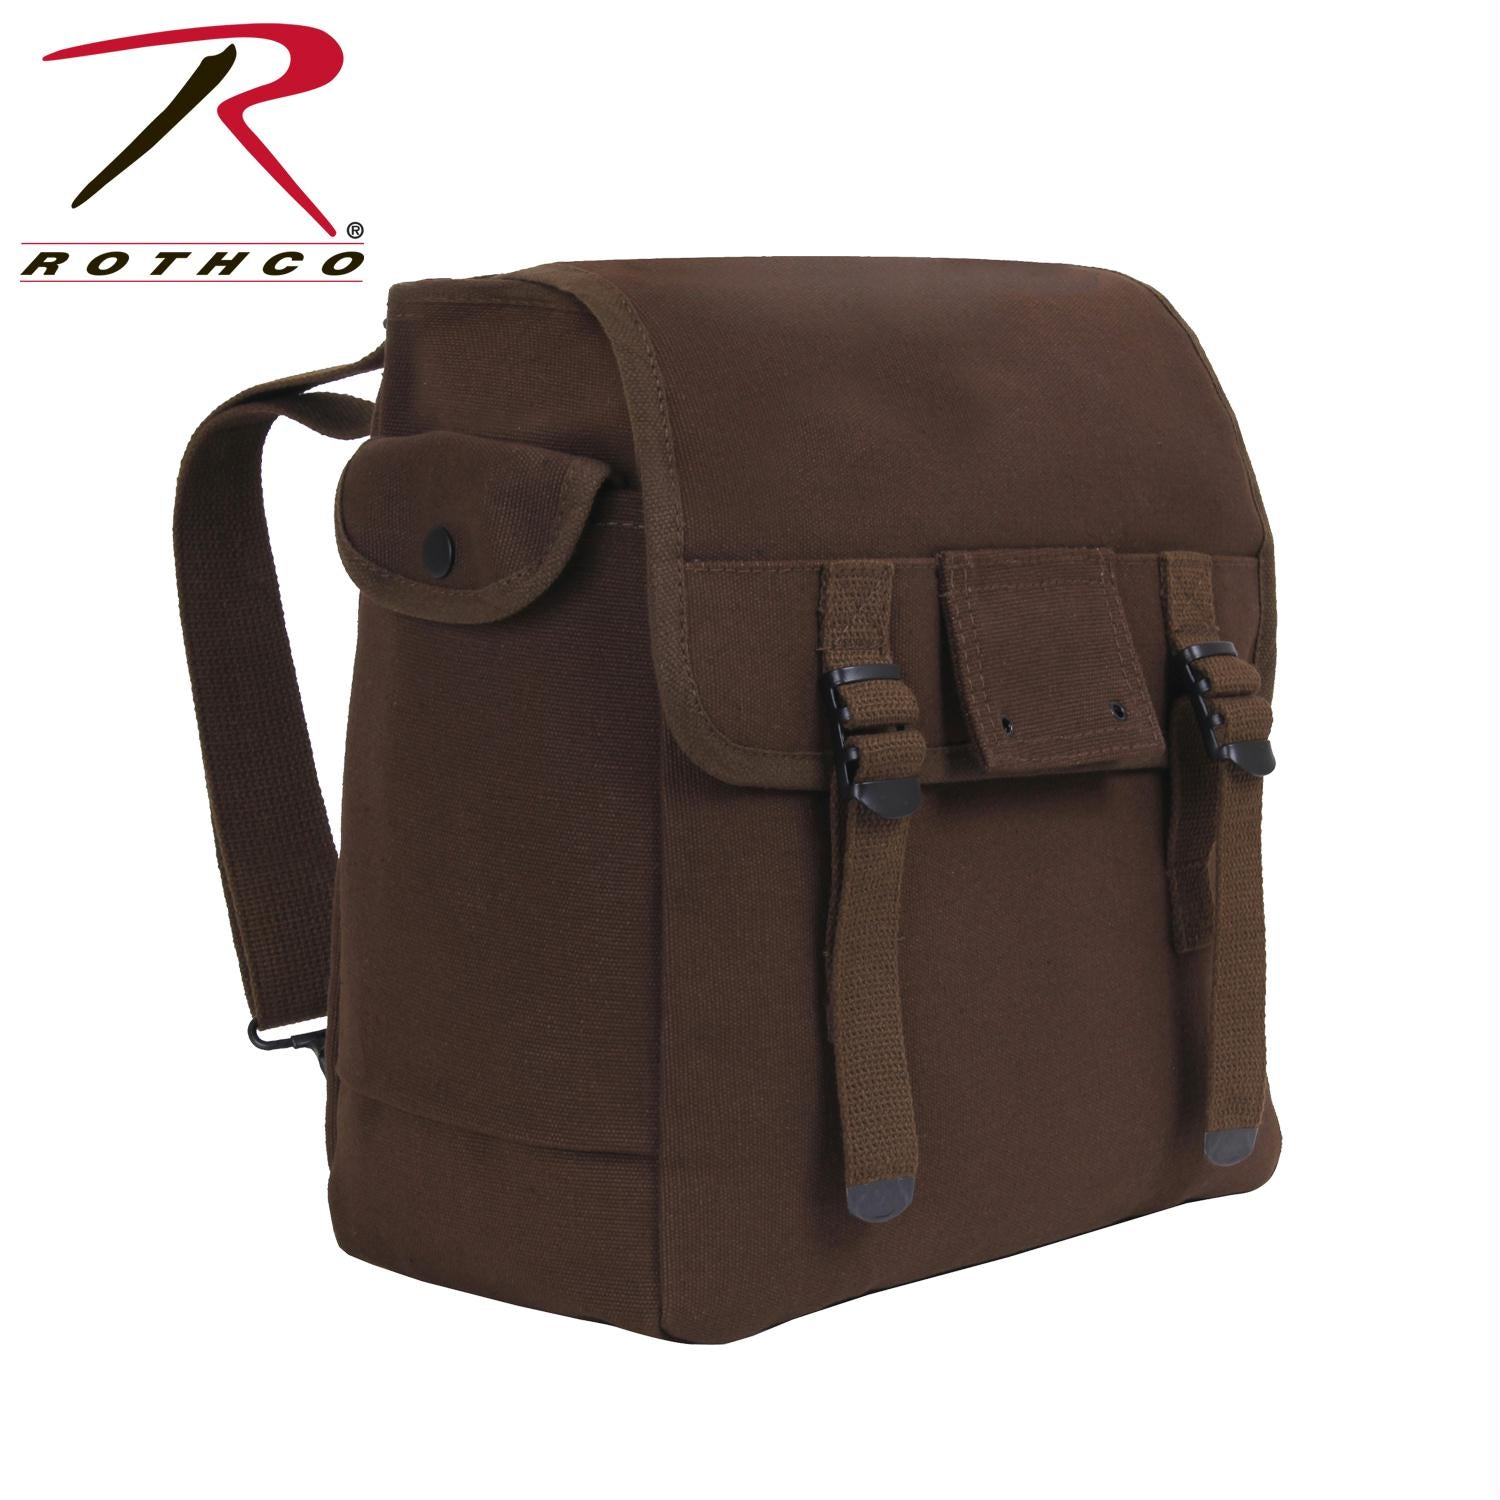 Rothco Heavyweight Canvas Musette Bag - Earth Brown